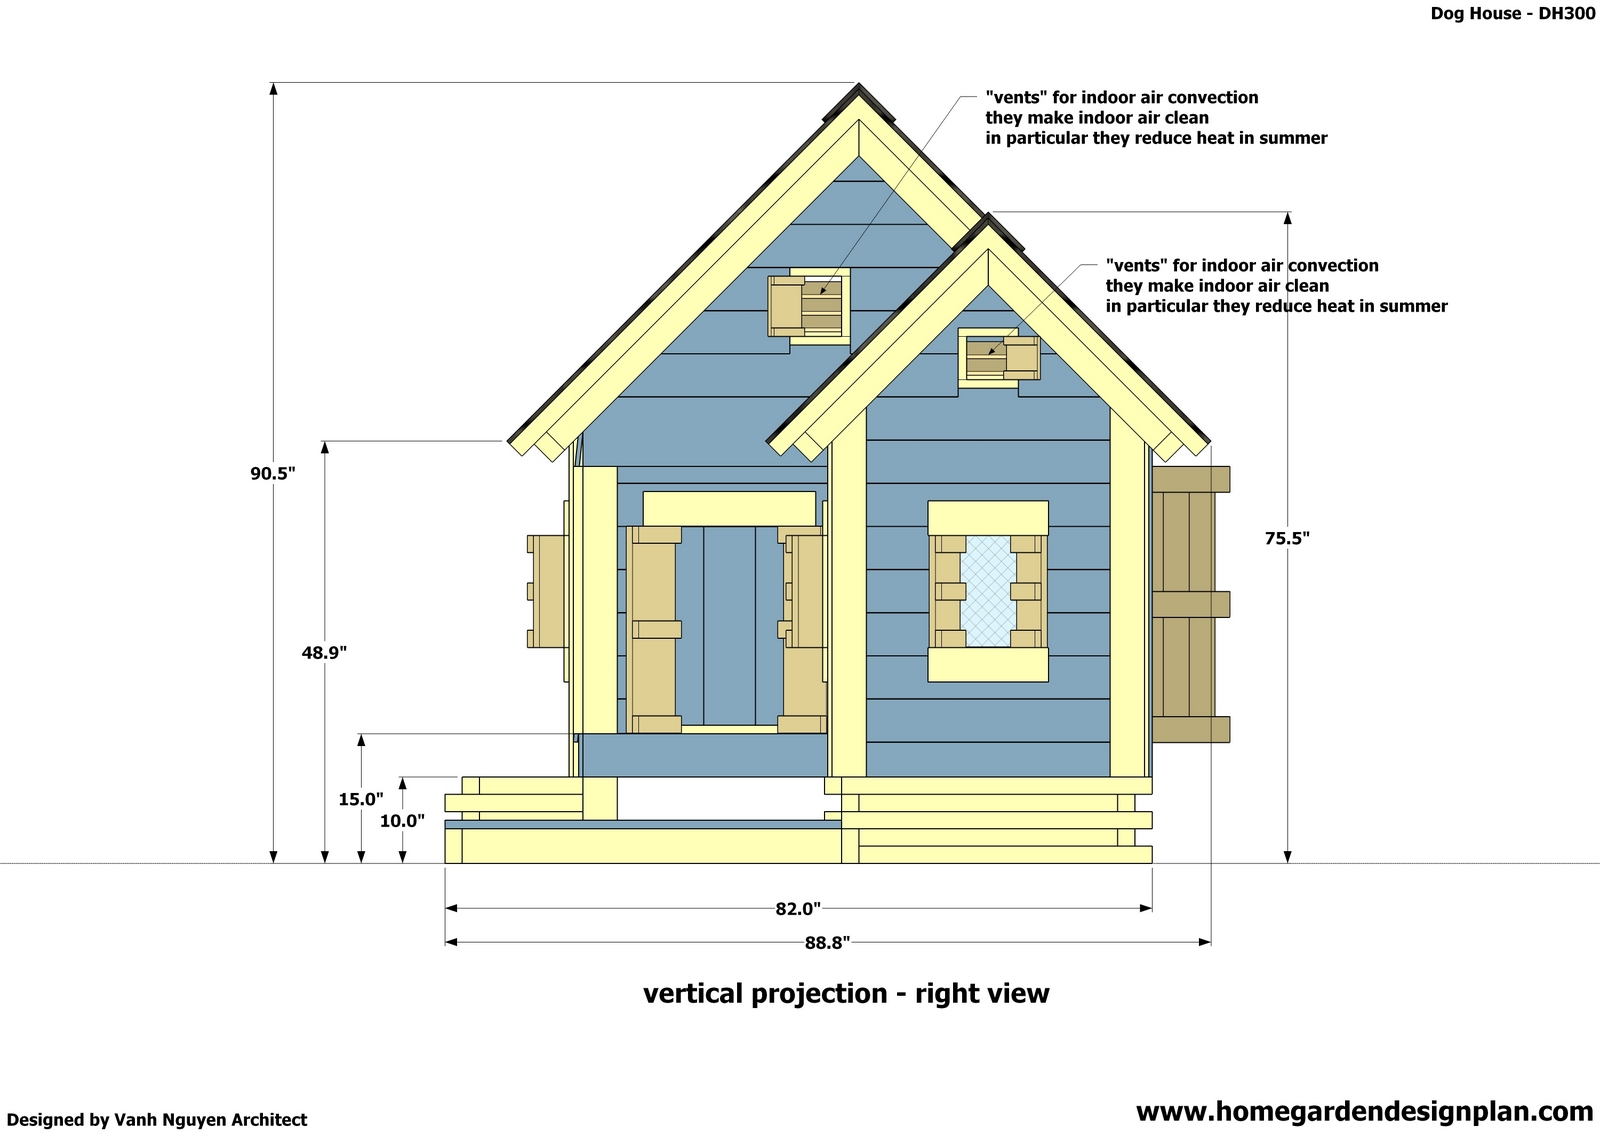 home garden plans: DH300 - Dog House Plans Free - How to ...